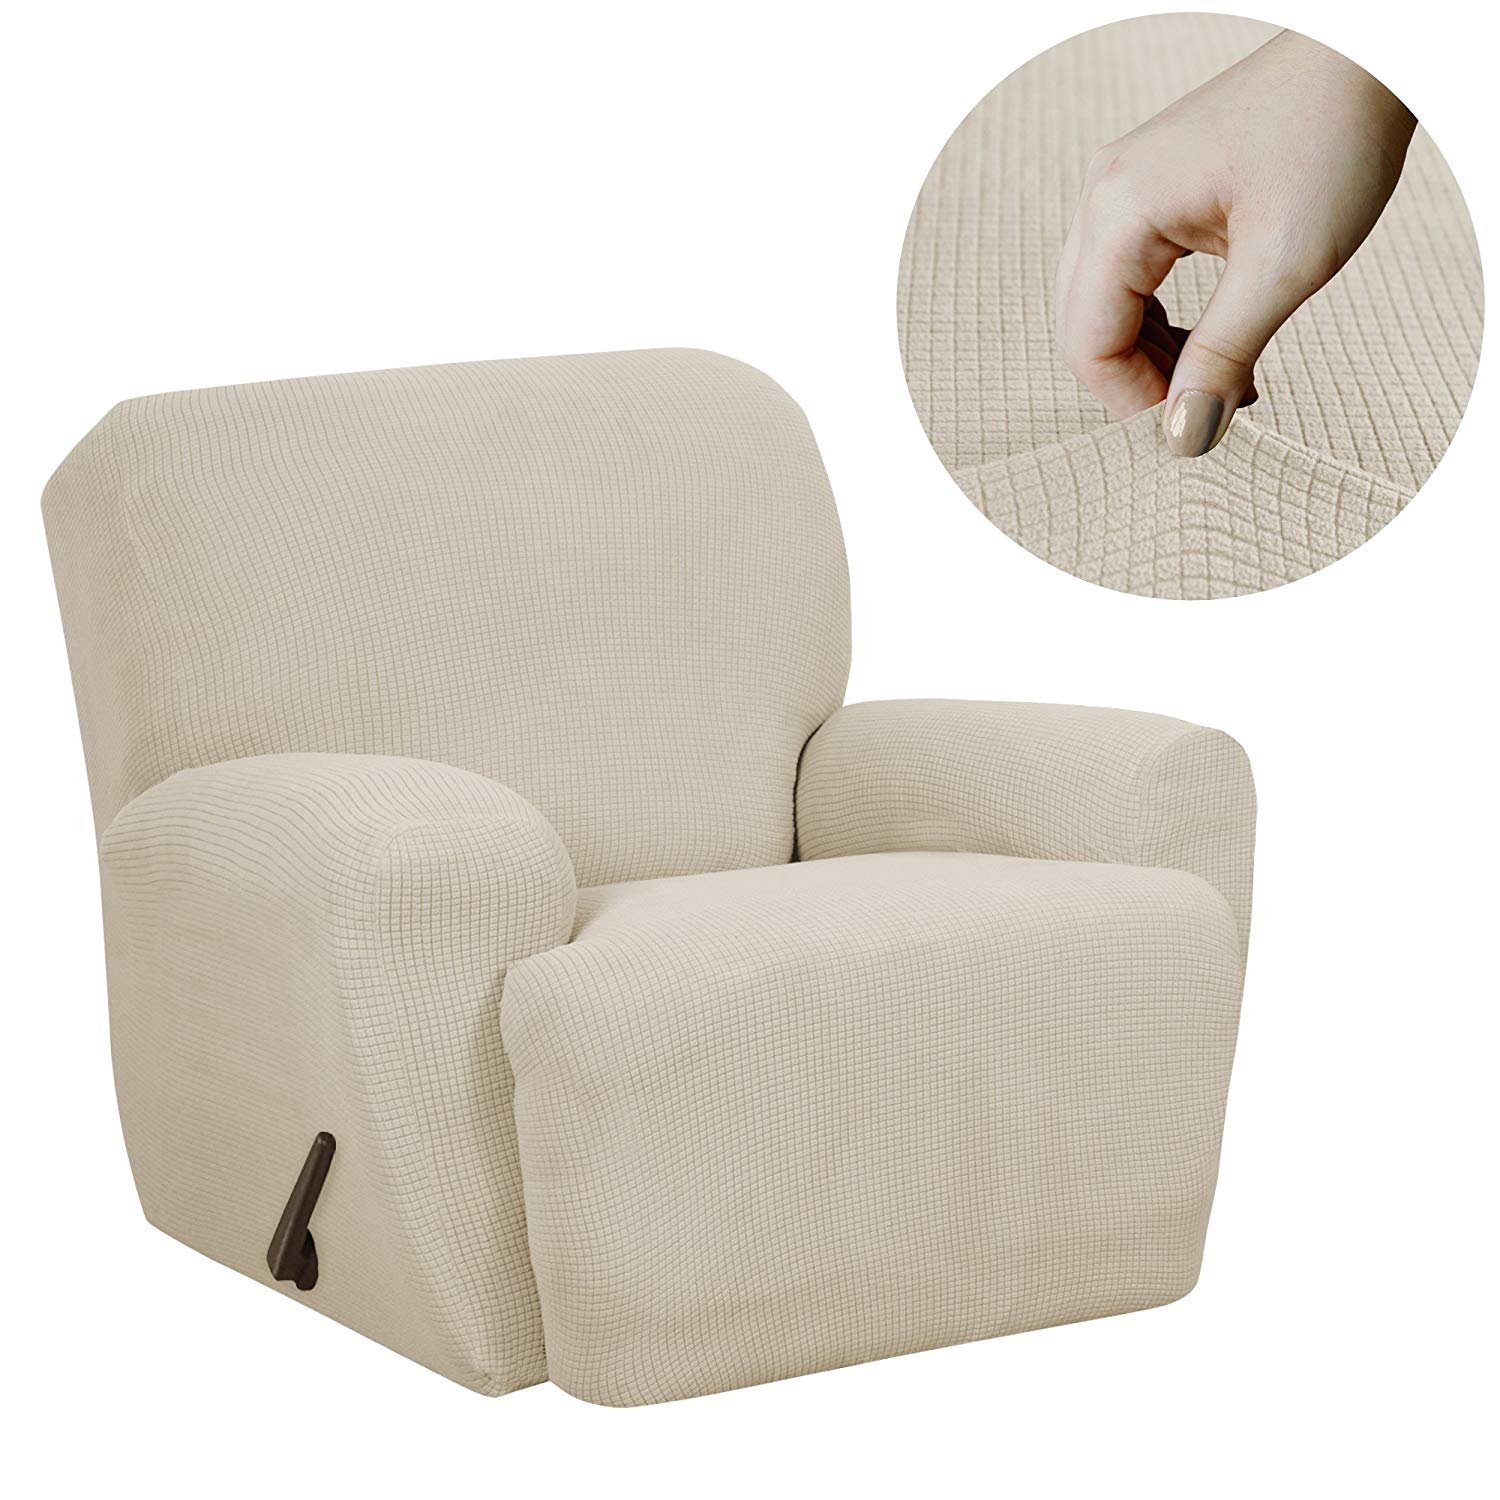 MAYTEX Reeves Stretch recliner Chair Cover with Side Pocket